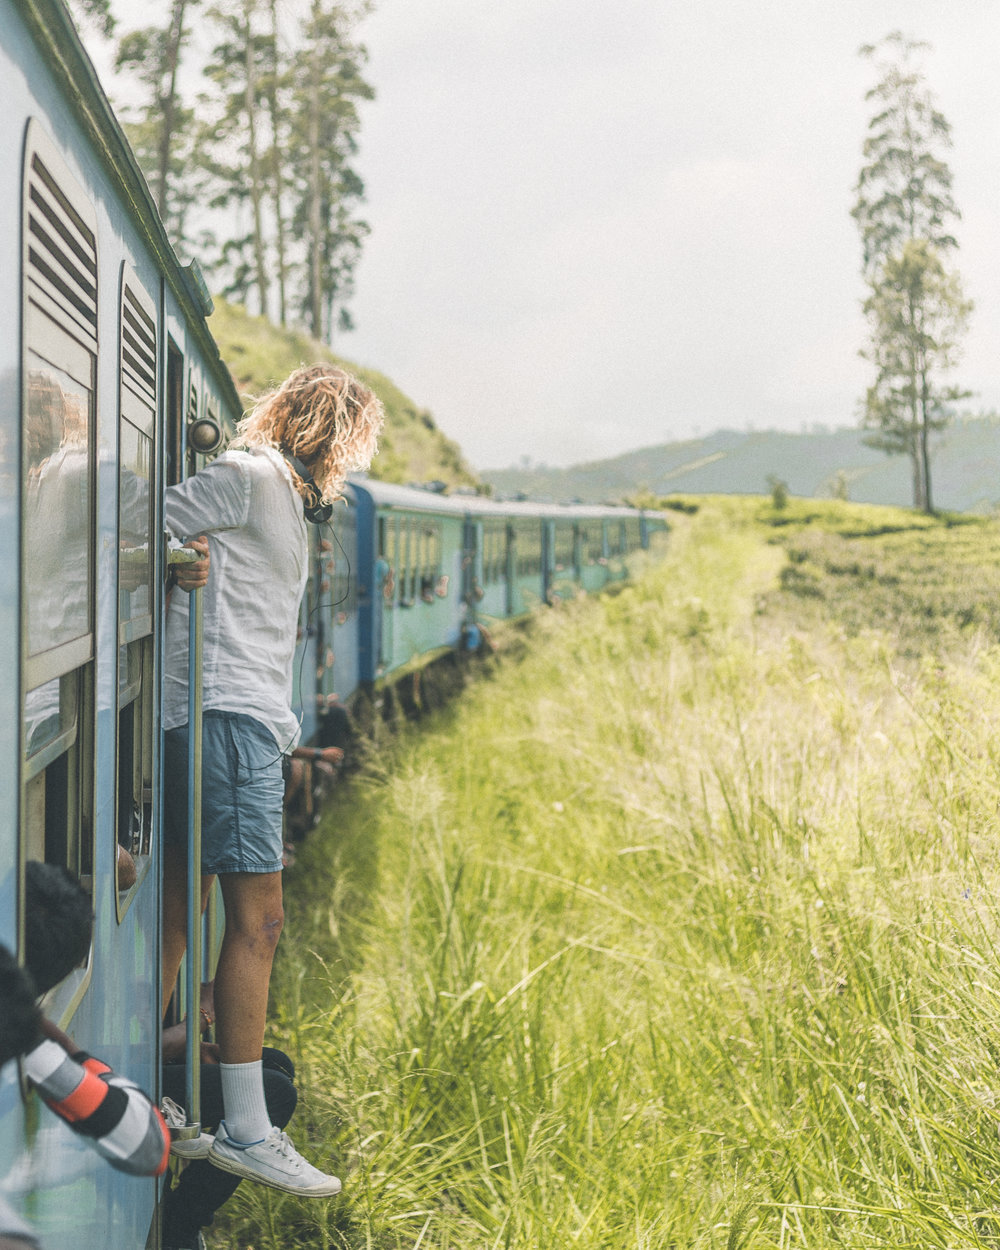 Probably the most common photo taken in Sri Lanka..How beautiful is the train and the scenery though!